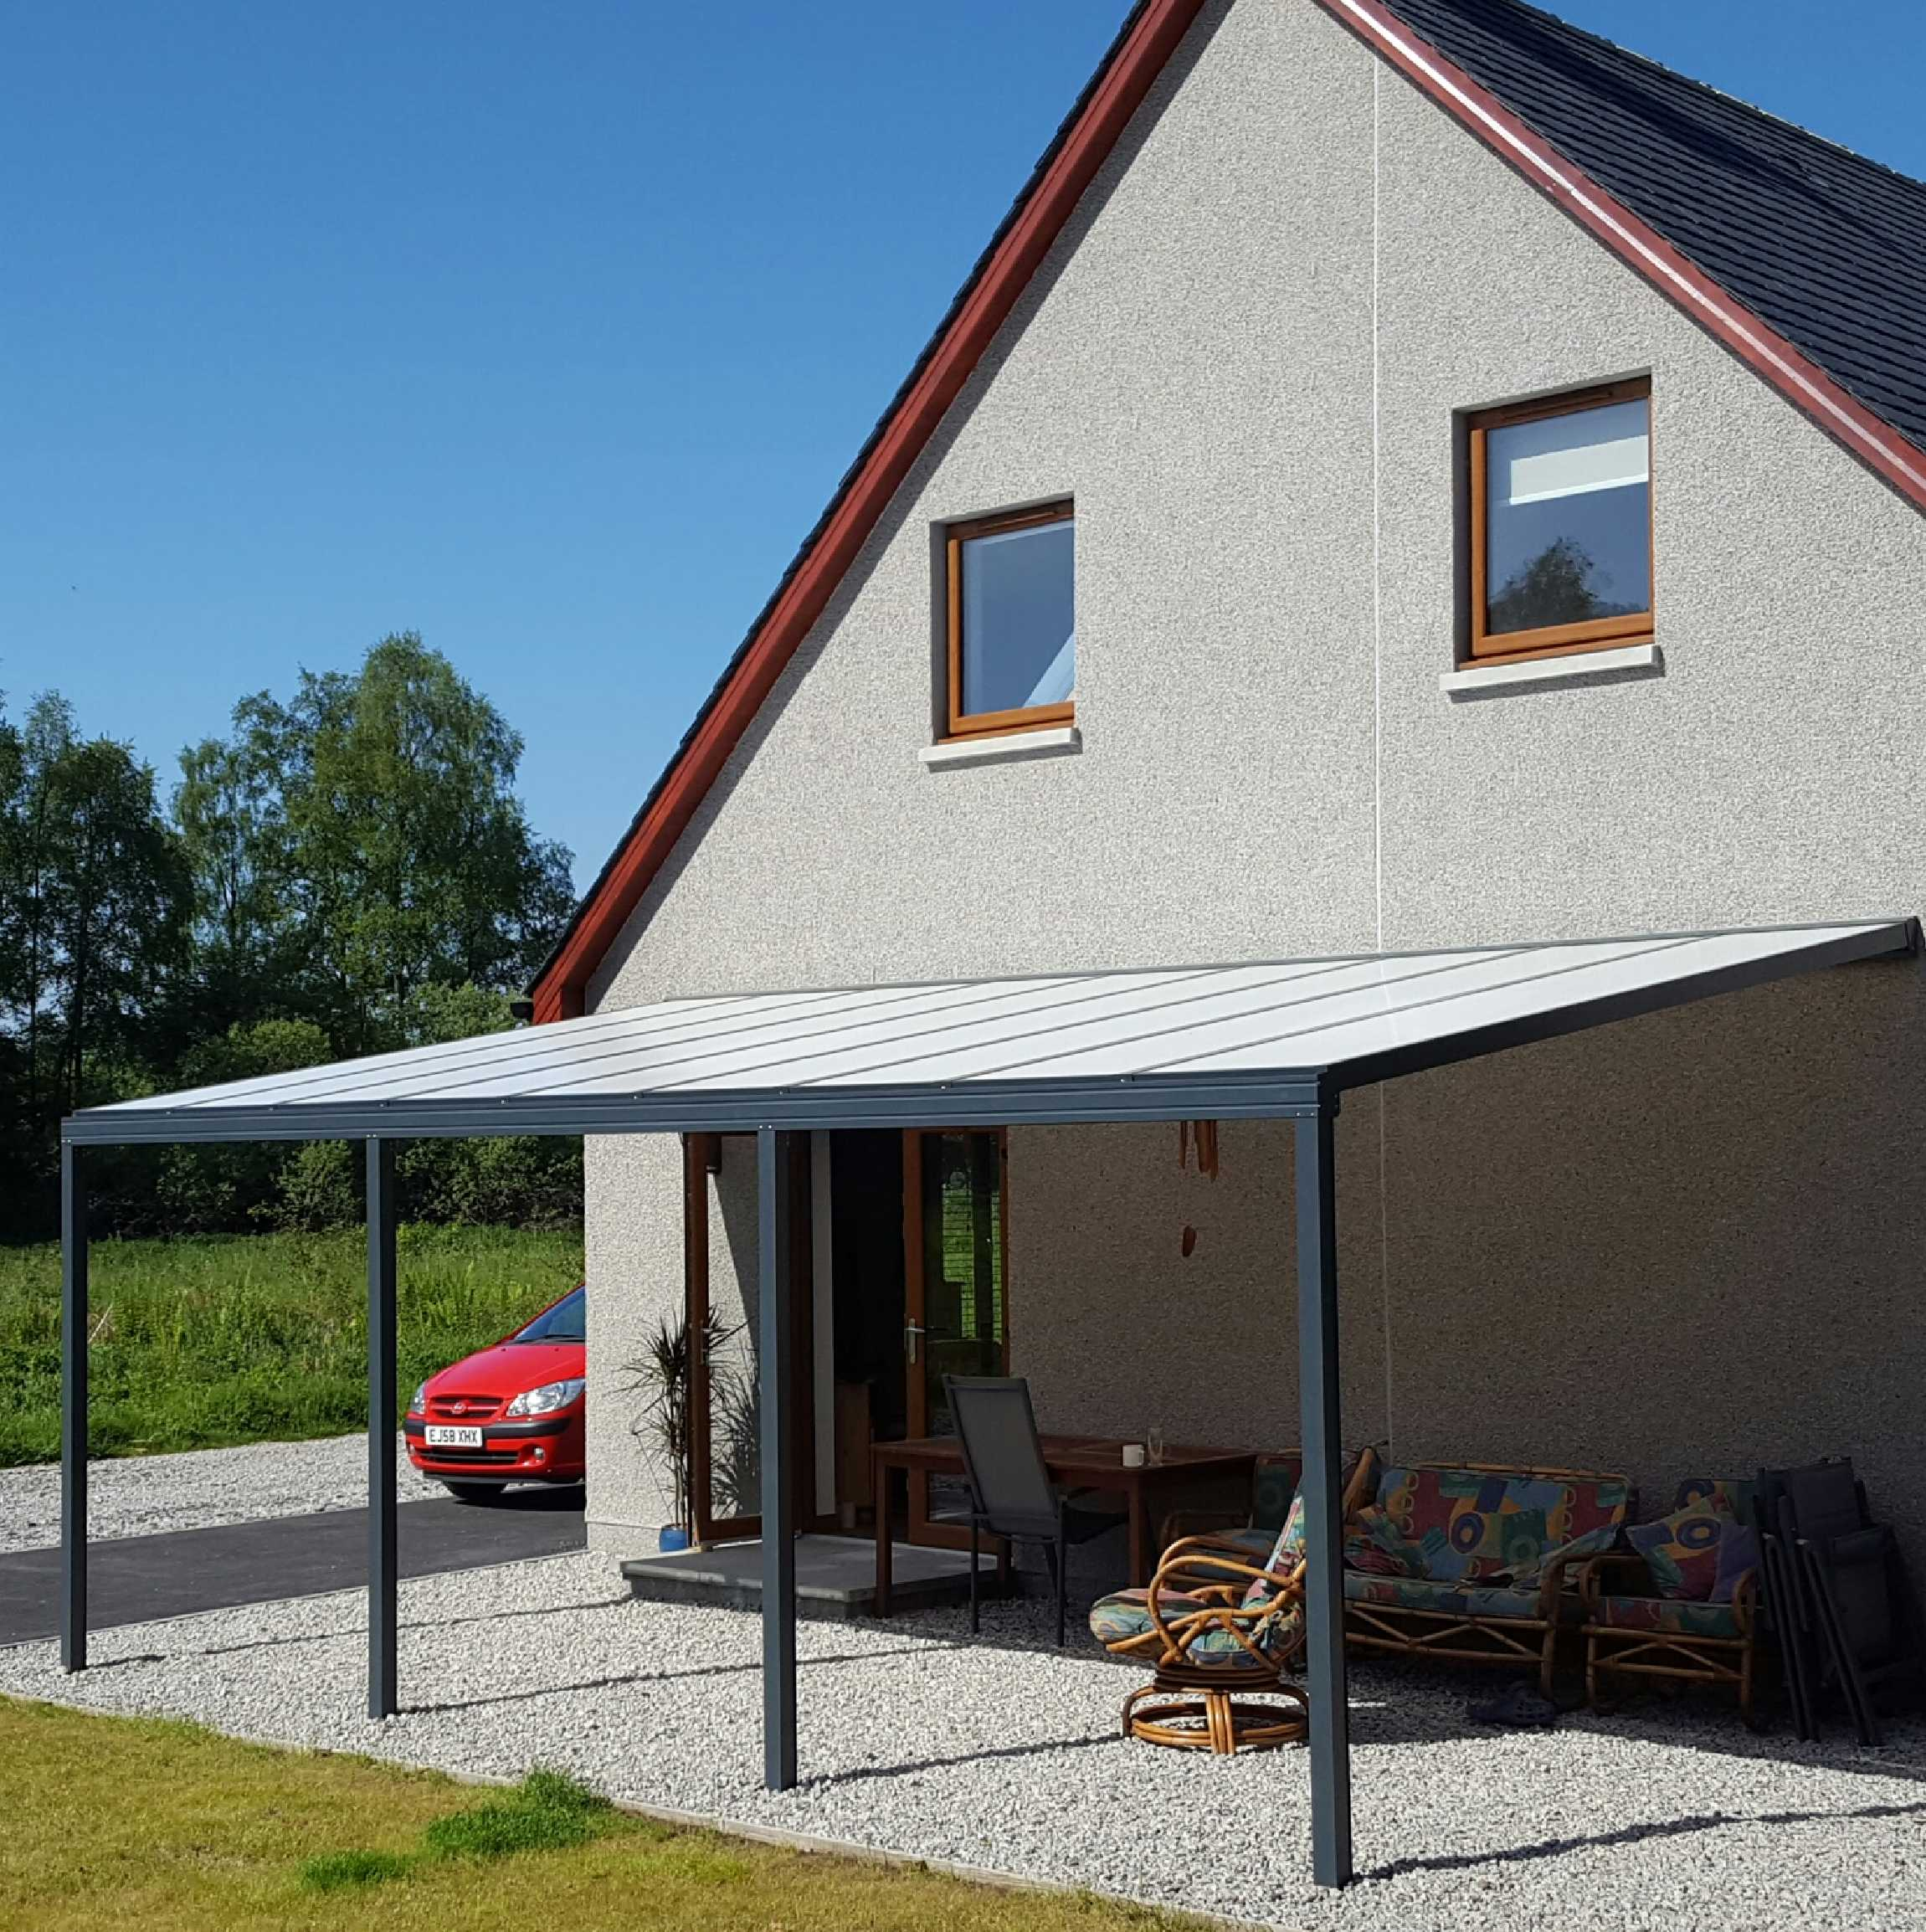 Great selection of Omega Smart Lean-To Canopy, Anthracite Grey, 16mm Polycarbonate Glazing - 2.8m (W) x 4.0m(P), (2) Supporting Posts